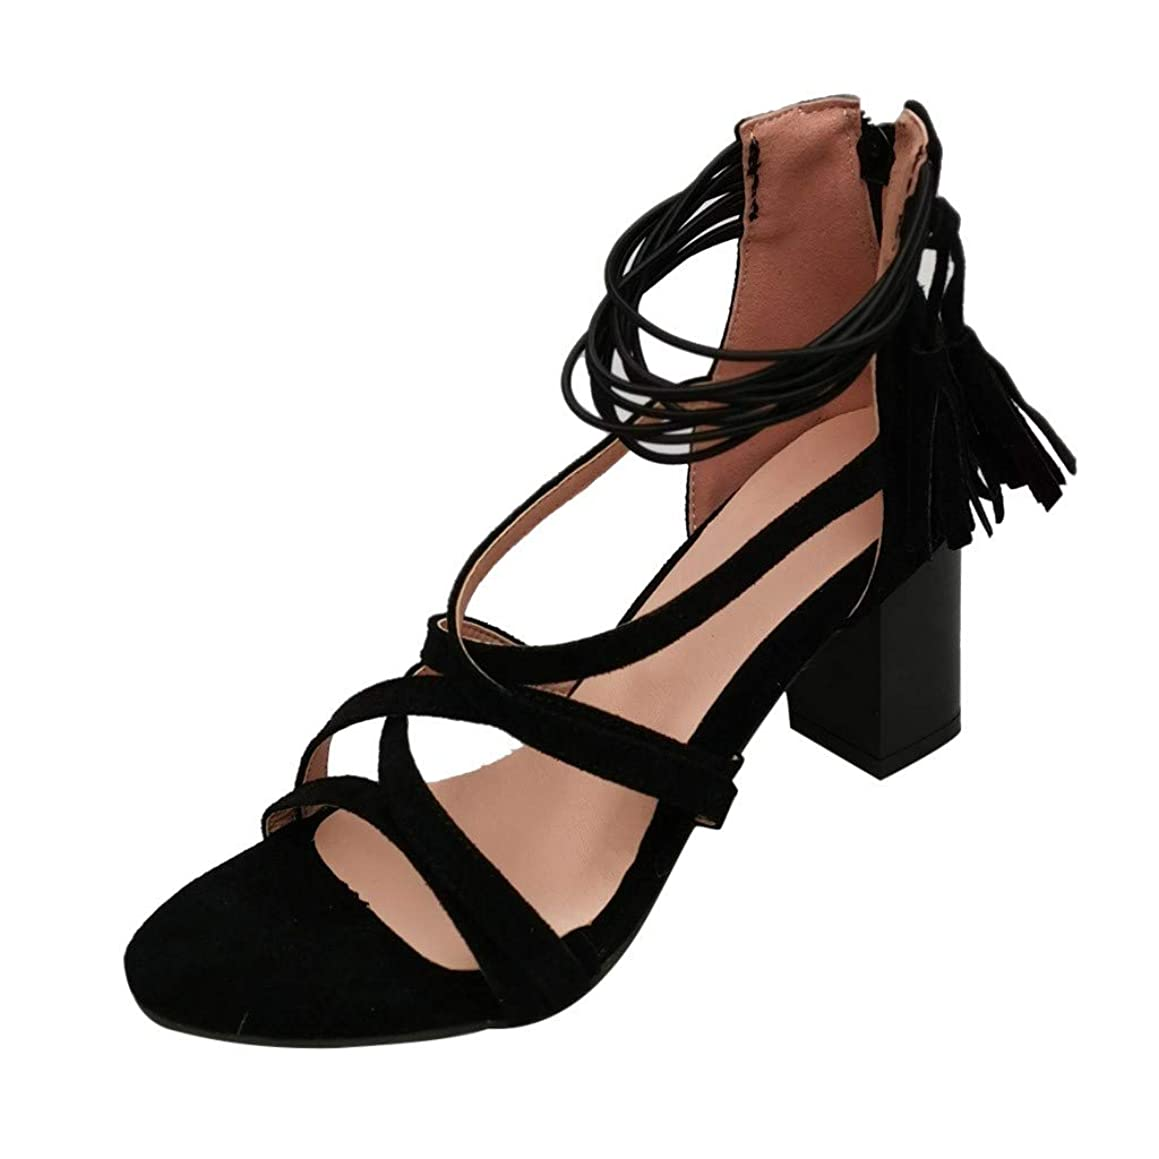 Londony Women's High Heels Cutout Lace up Sandal Comfortable Strappy Chunky Block Ankle Strap Open Toe Heeled Sandals